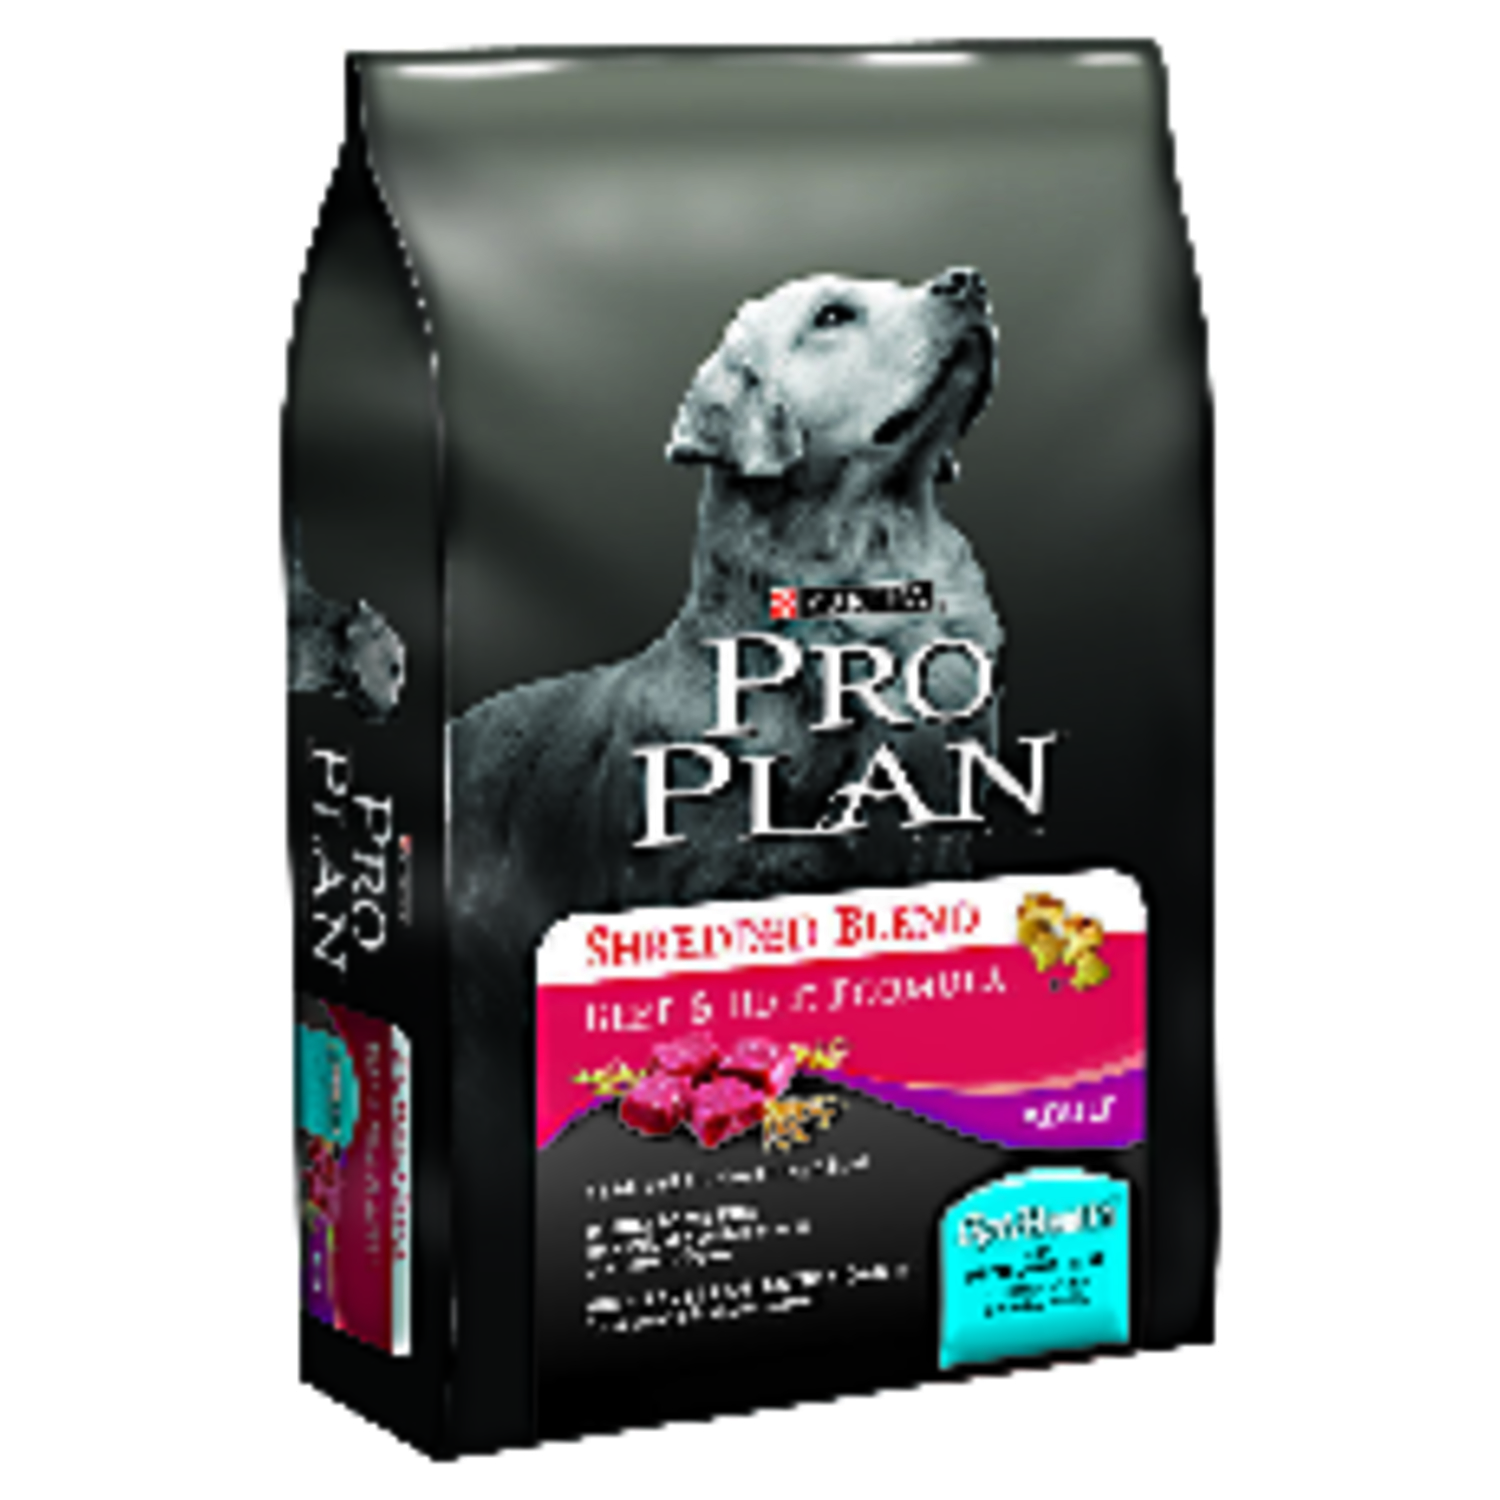 Purina  Pro Plan Shredded Blend  Beef and Rice  Dry  Dog  Food  35